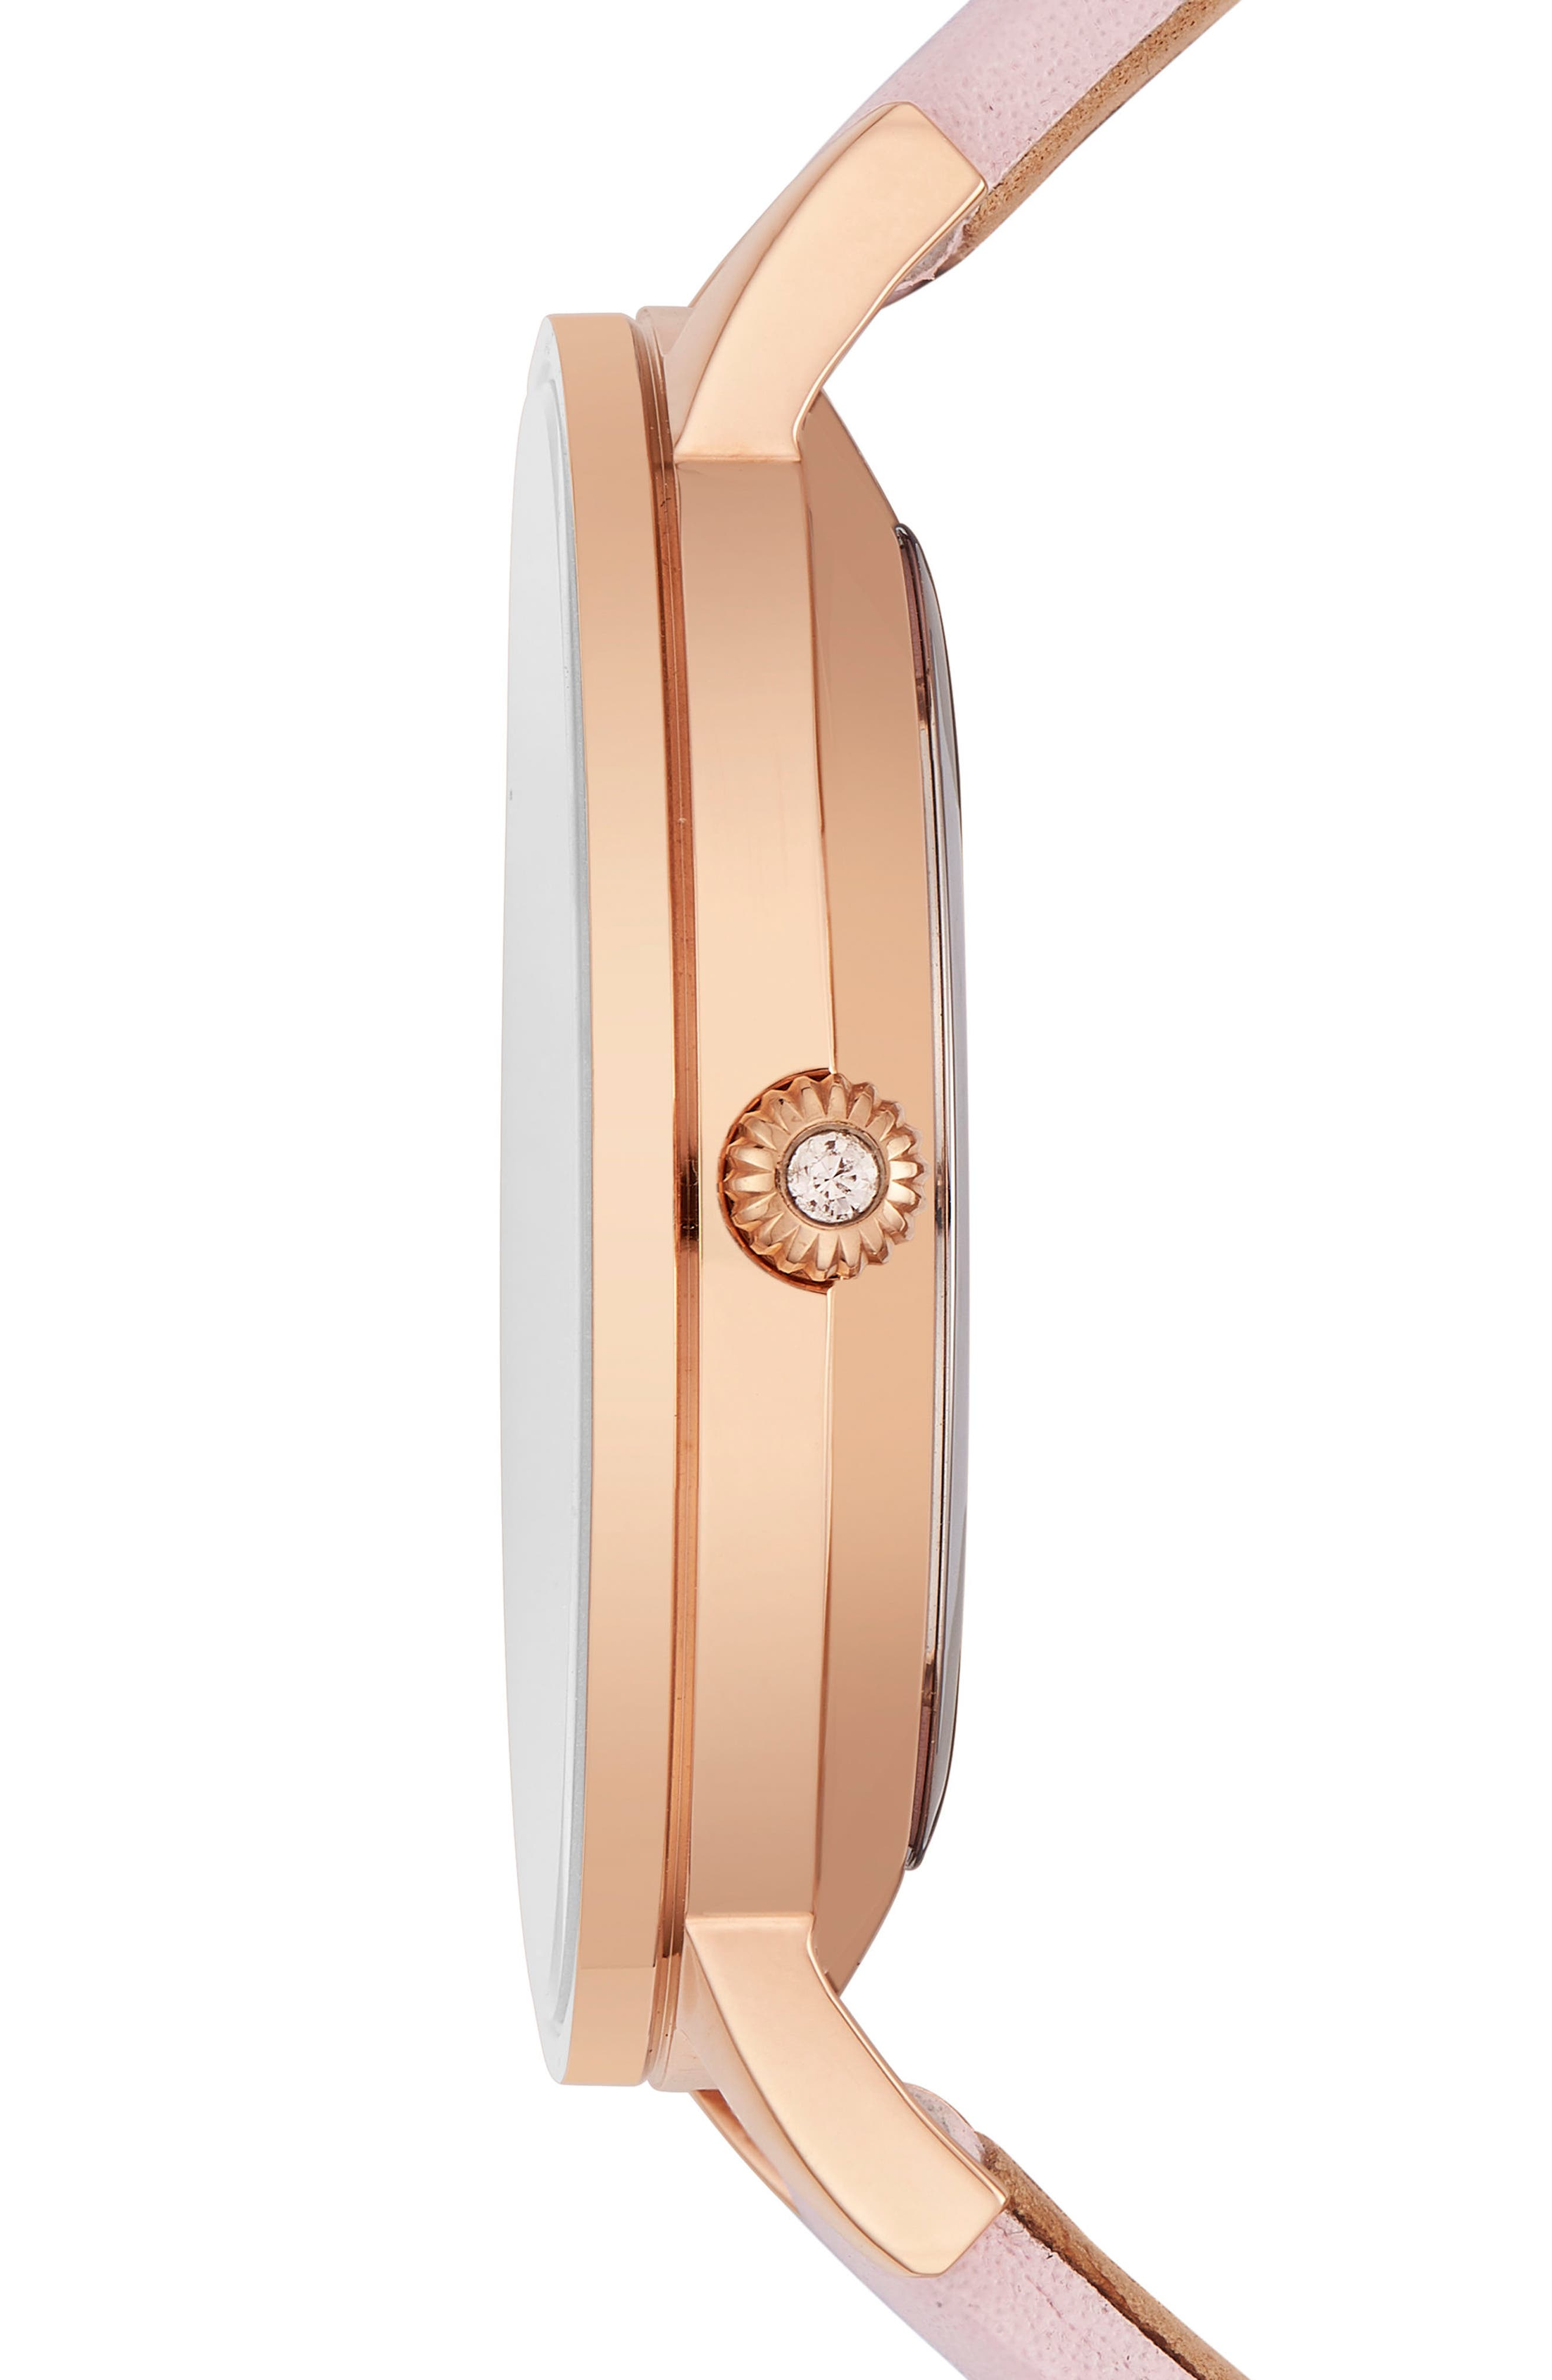 Olivia Leather Strap Watch,                             Alternate thumbnail 3, color,                             PINK/ WHITE/ ROSE GOLD